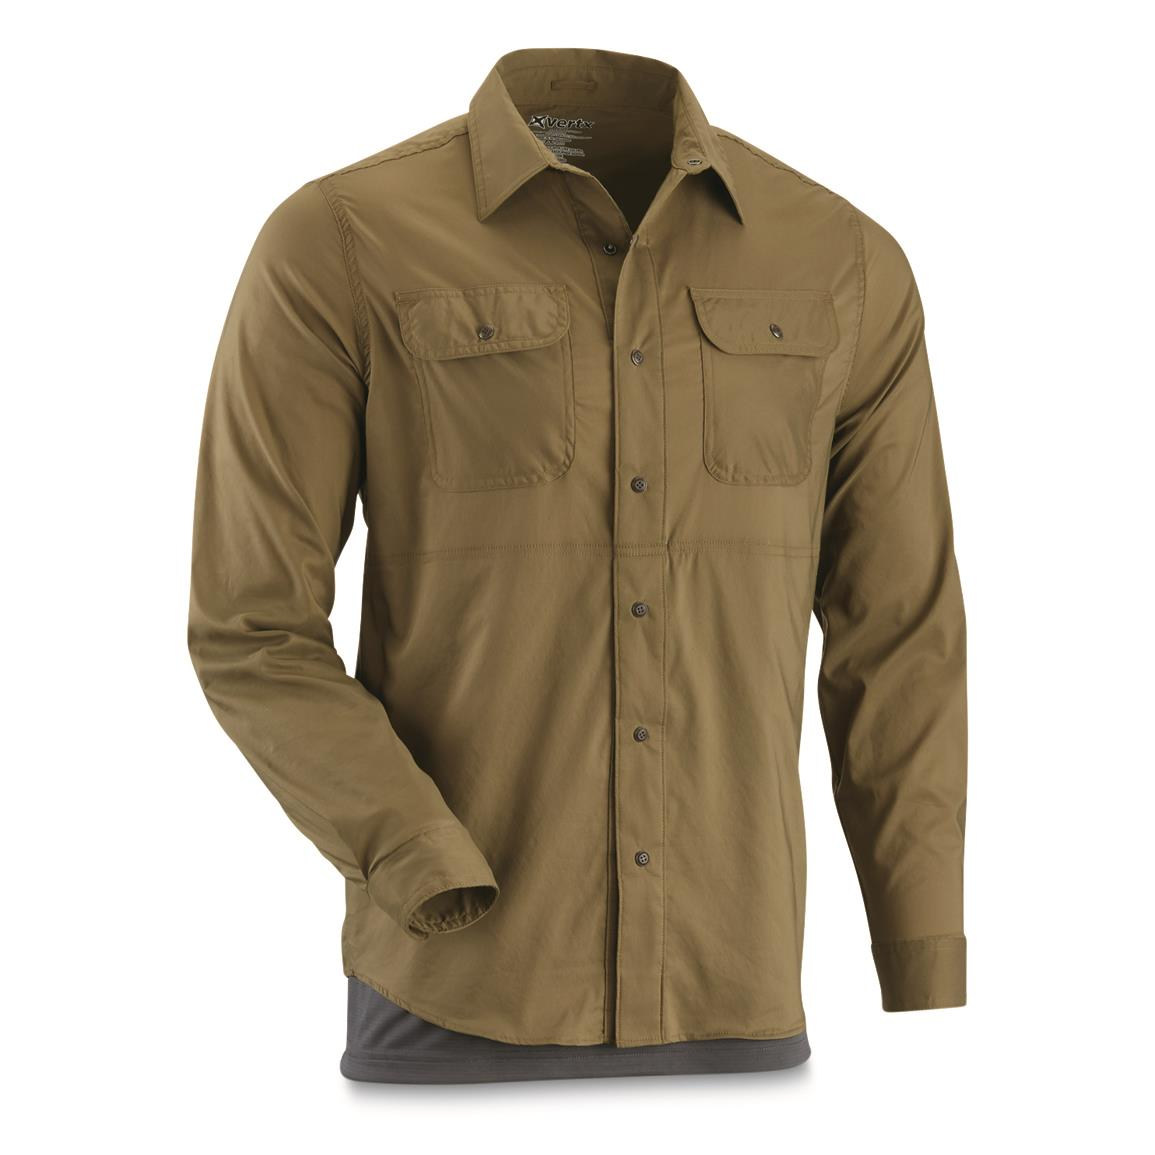 Vertx Guardian Long Sleeve Button Down Shirt with WeaponGuard, Olive